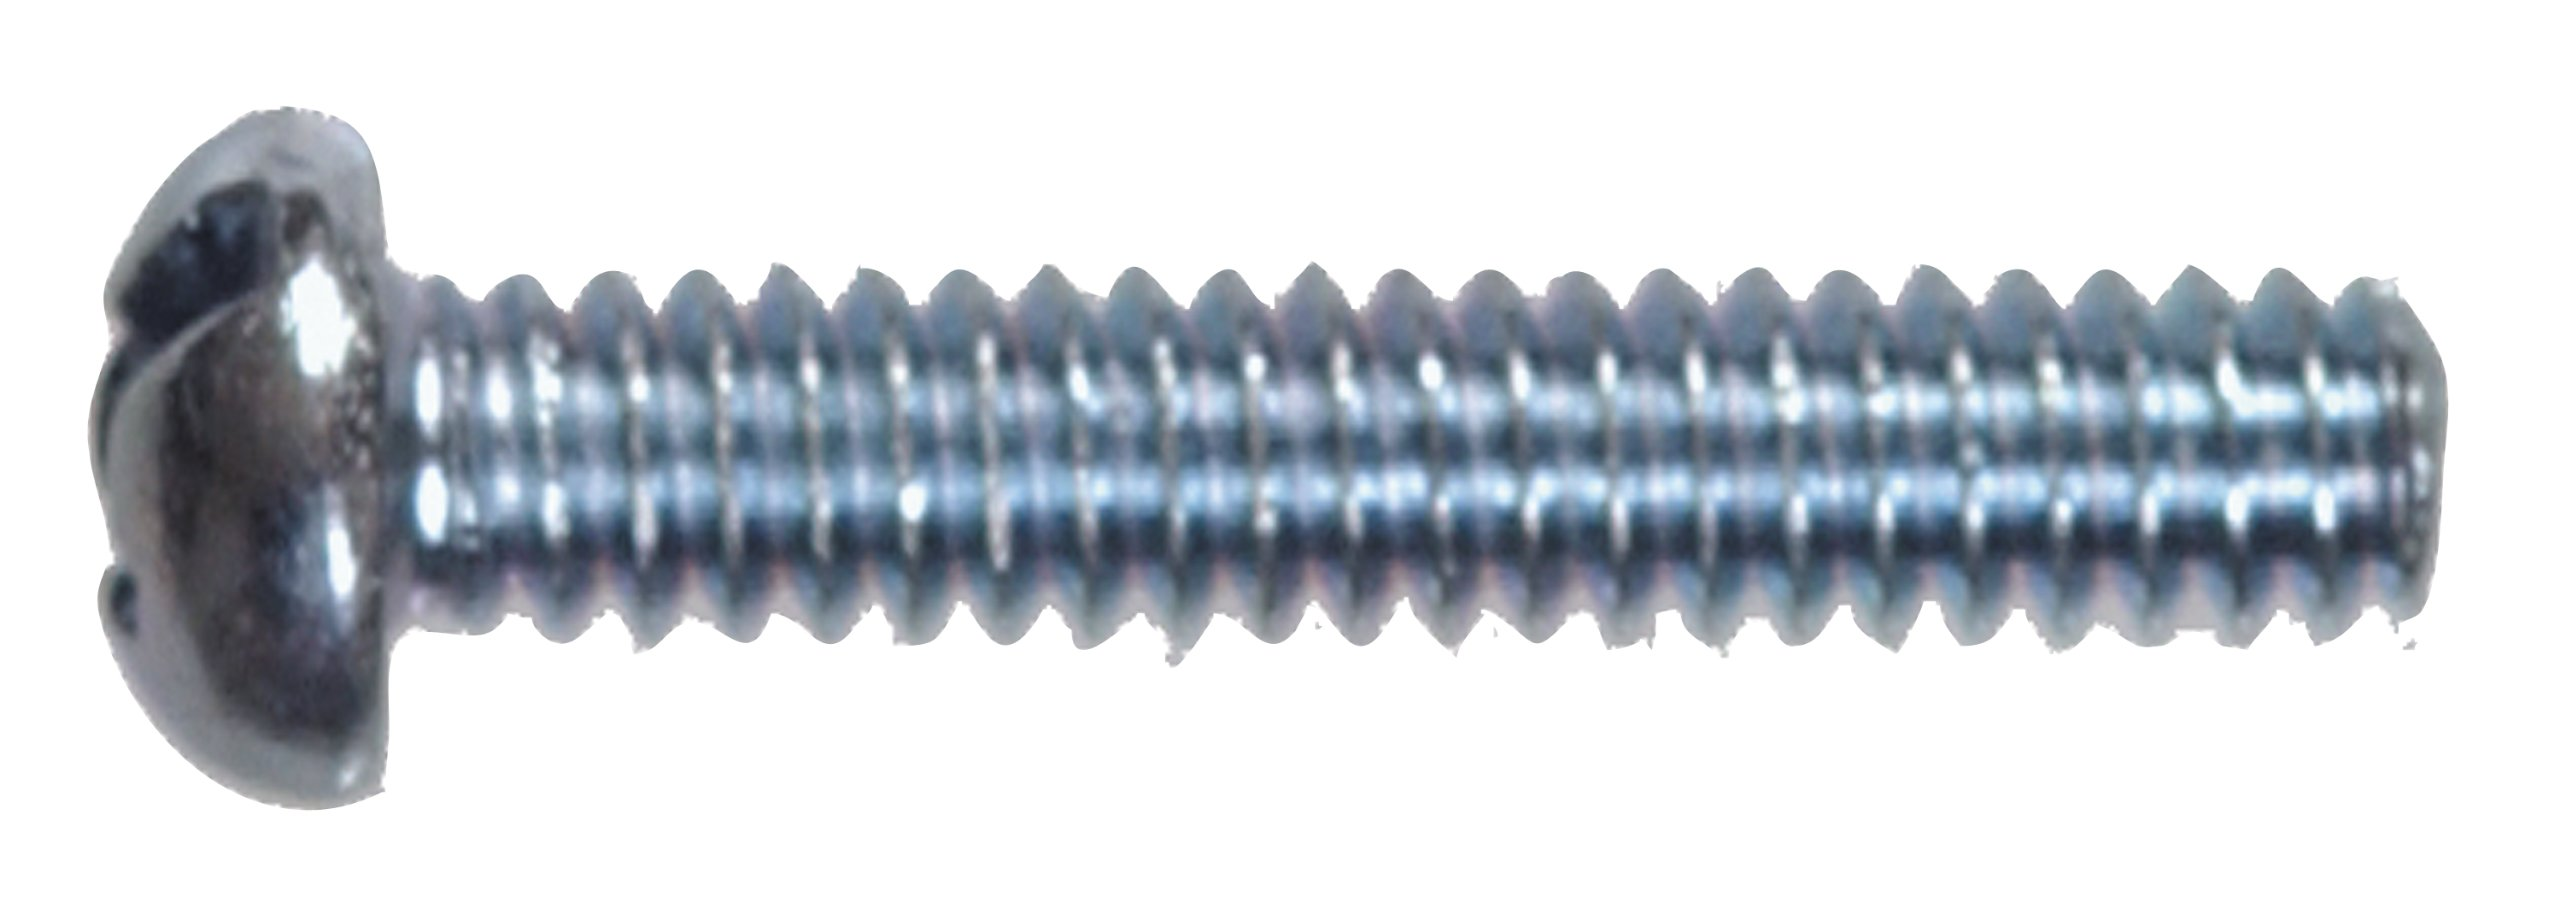 The Hillman Group 90332 10-32-Inch x 4-Inch Round Head Combo Machine Screw, 100-Pack